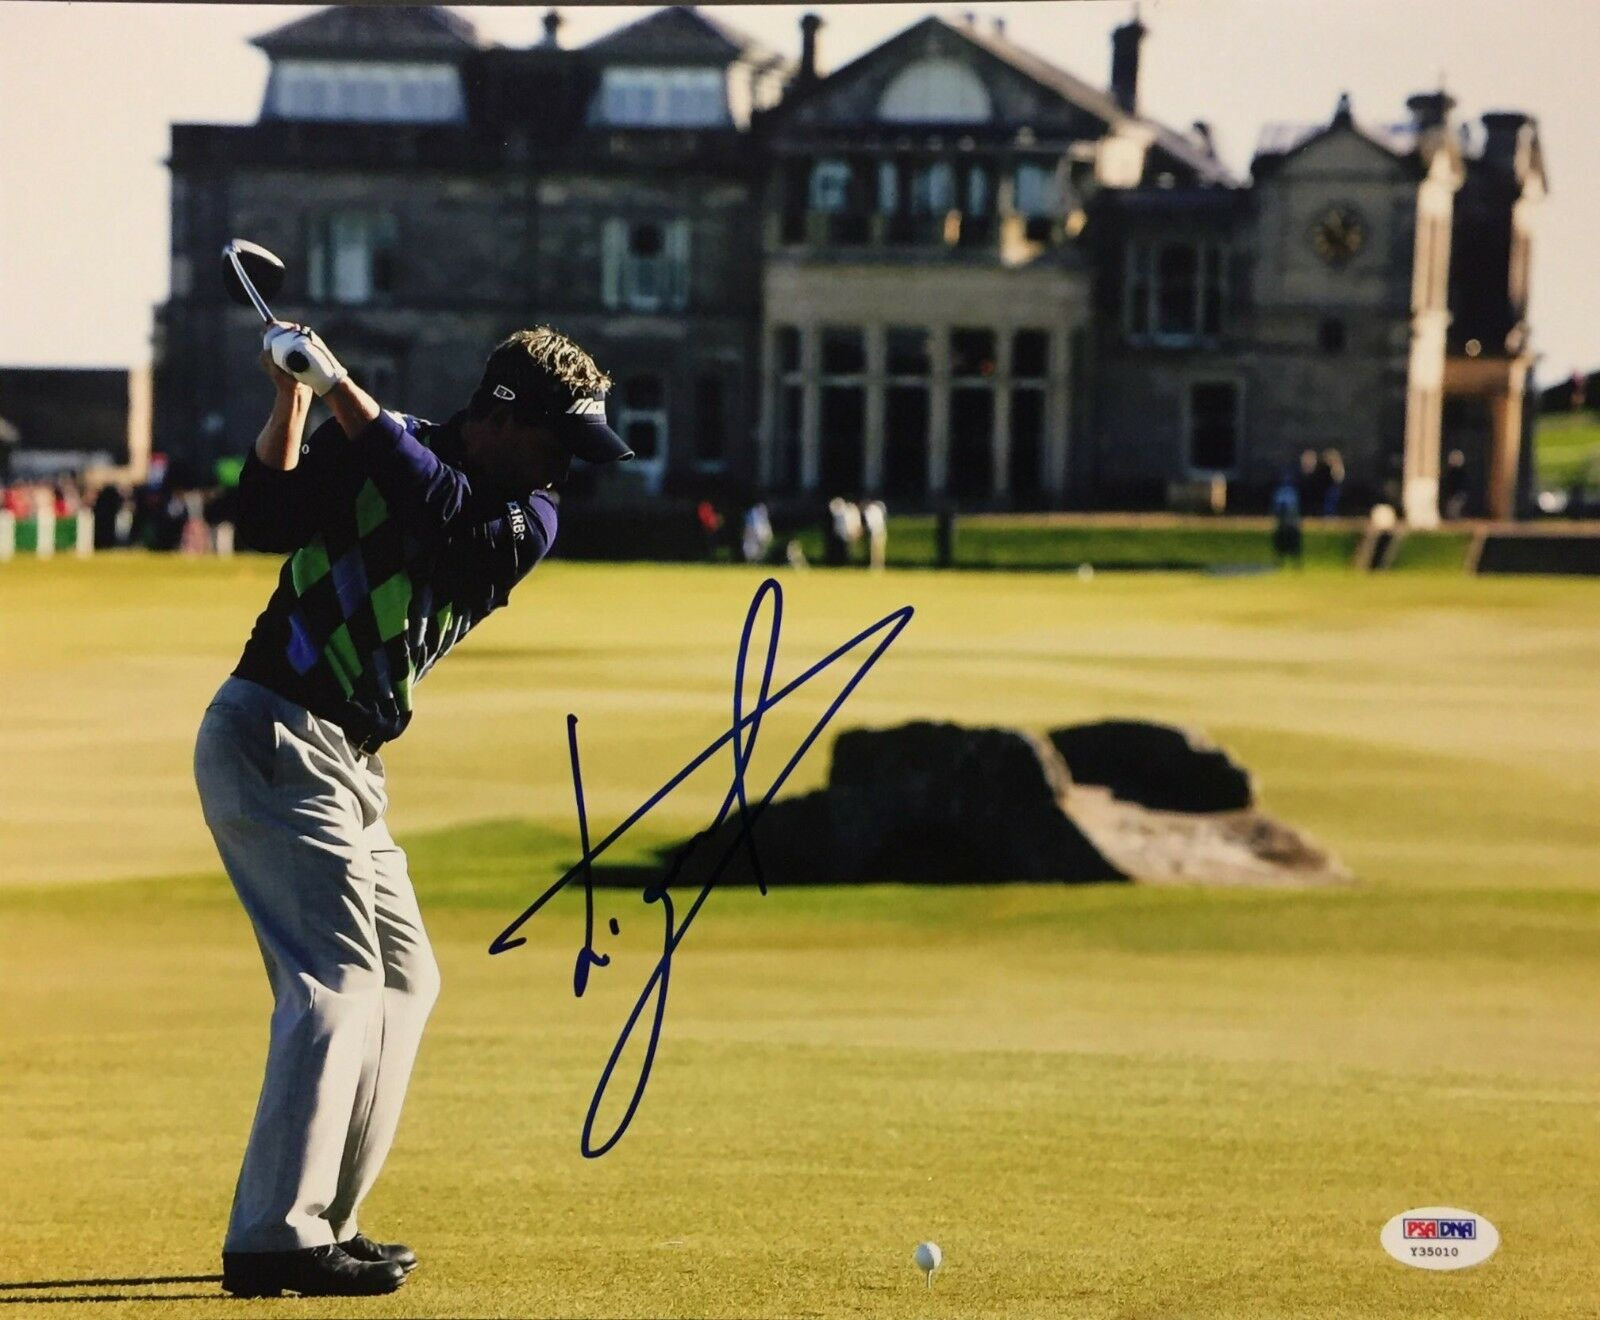 Luke Donald Signed 11x14 Photo *Golf PSA Y35010